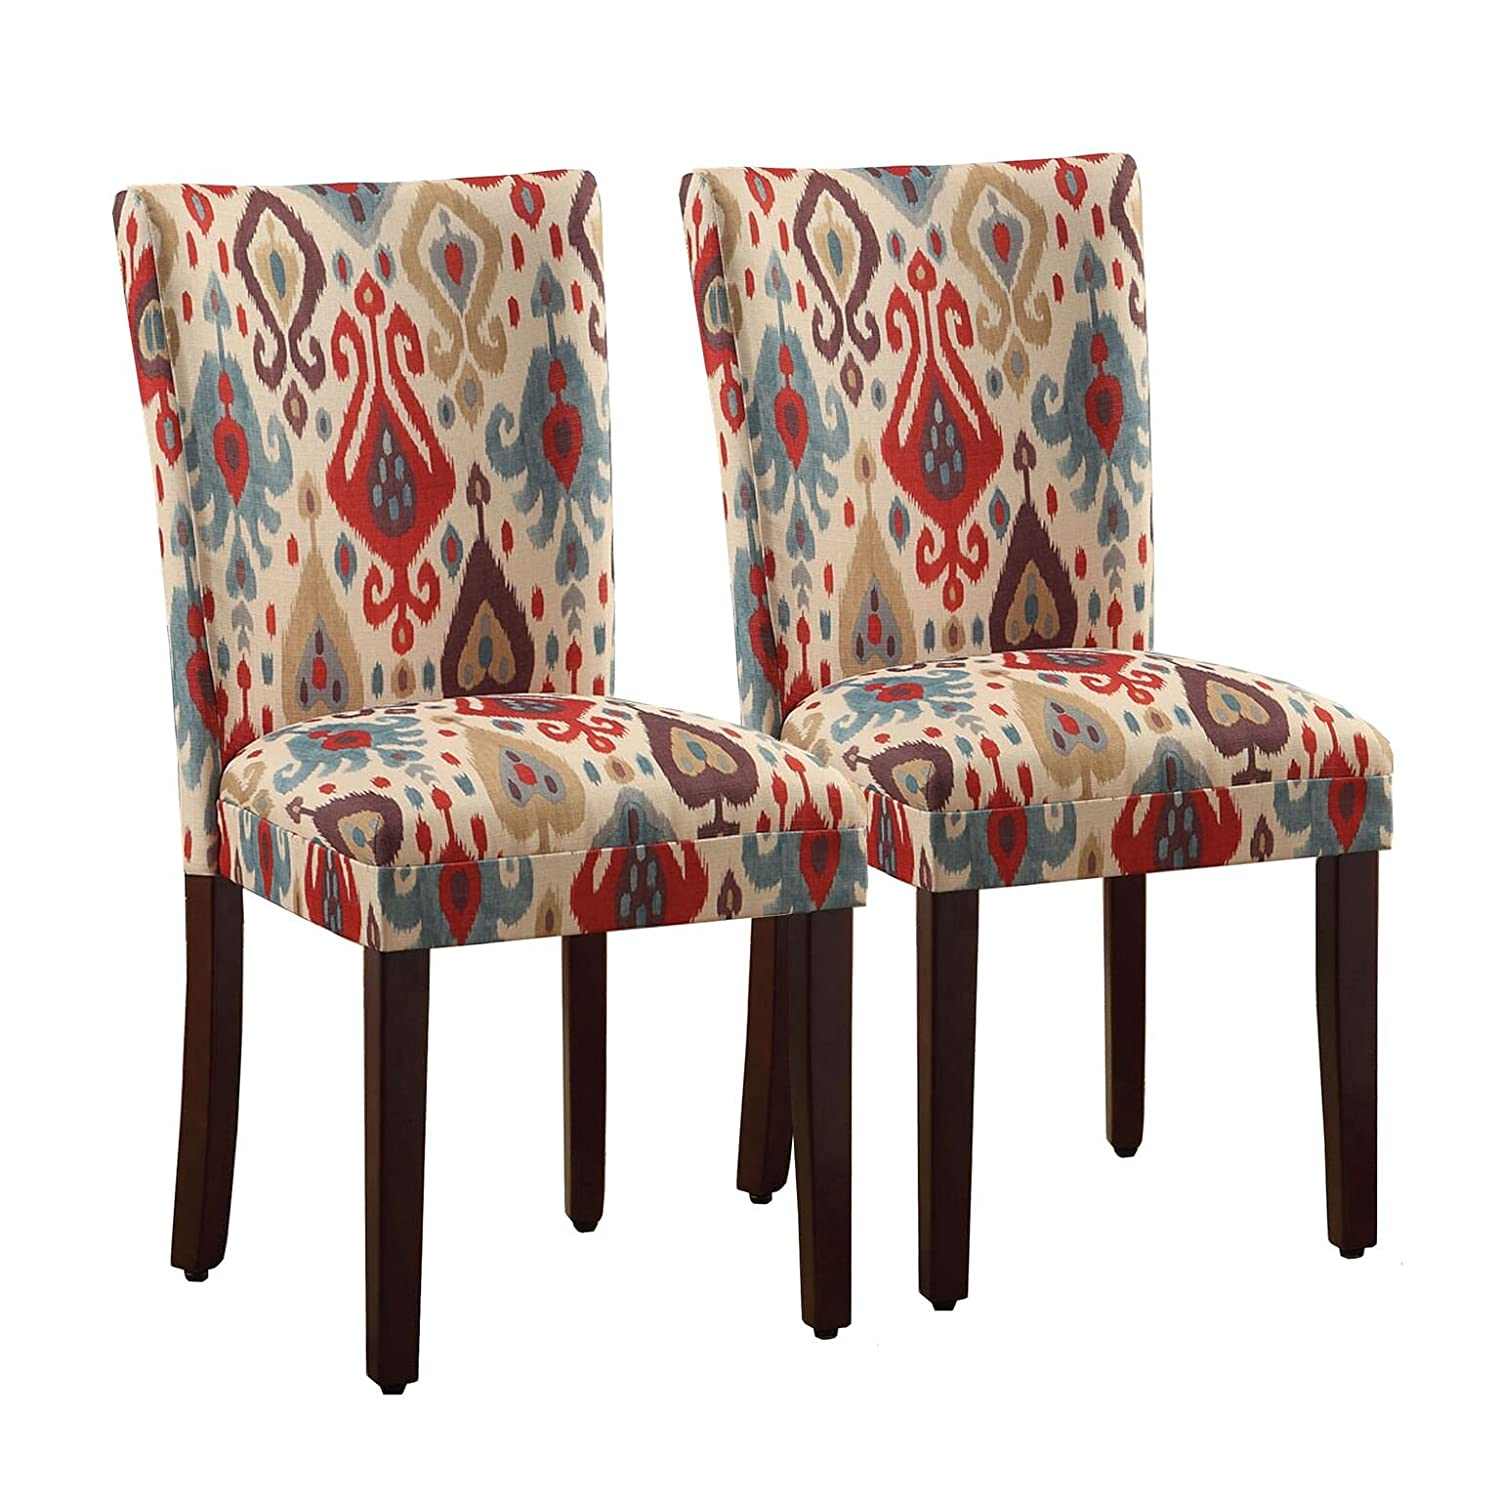 Kinfine Parsons Deluxe Multi-Color Ikat Dining Chair, Sienna (Set of 2) N6354-A708